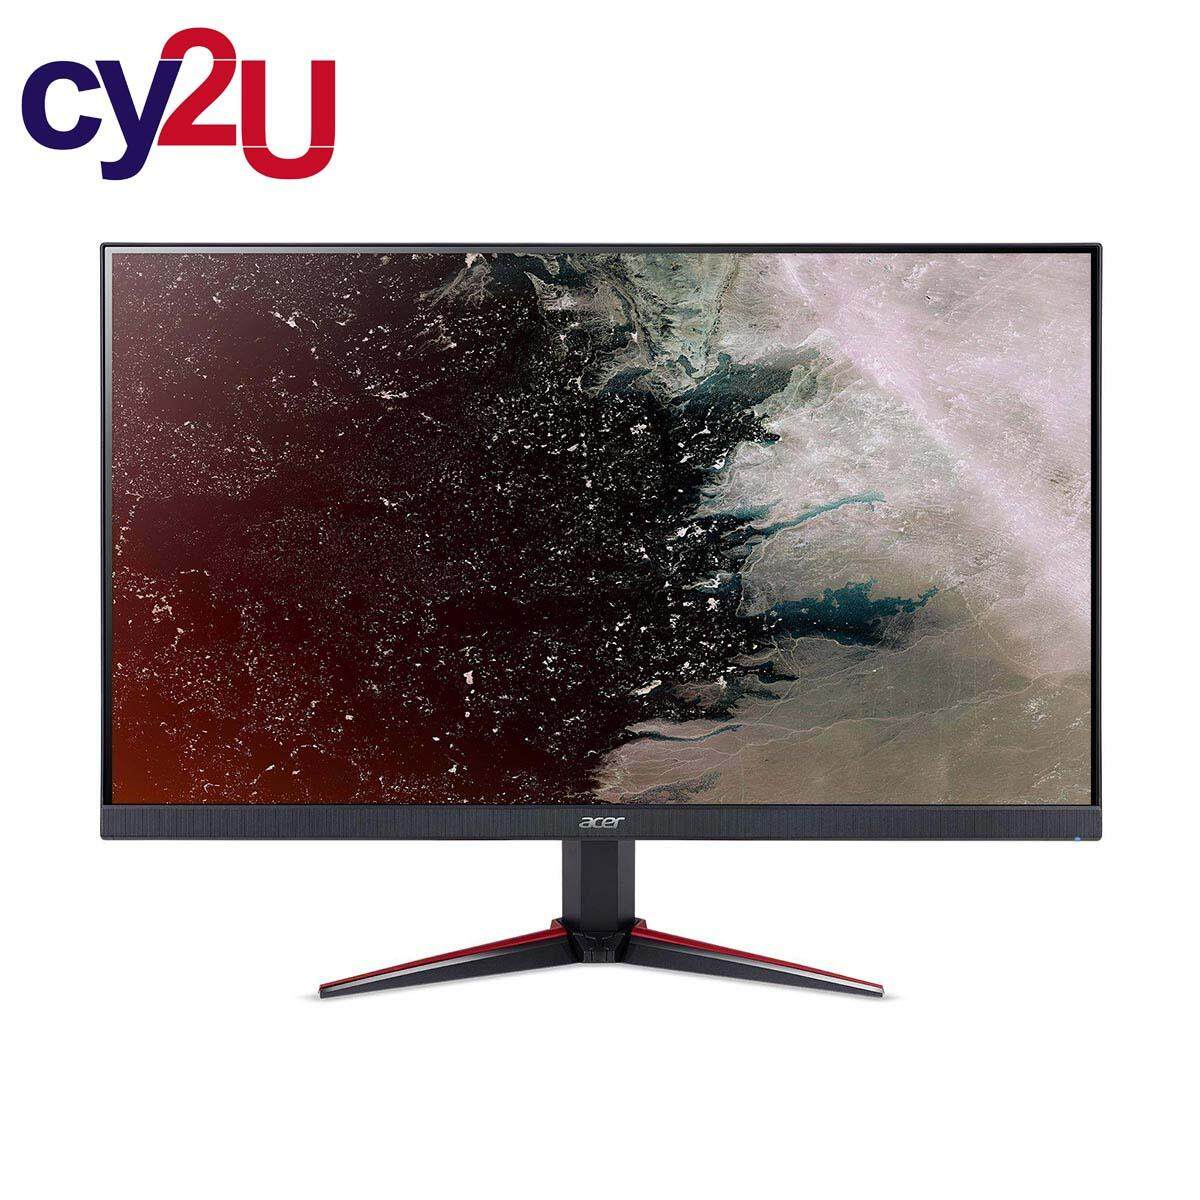 Acer Nitro VG270 27 IPS 75Hz 1ms VBR Gaming Monitor (VGA, HDMIx2) Free-Sync, Build in Speaker Malaysia